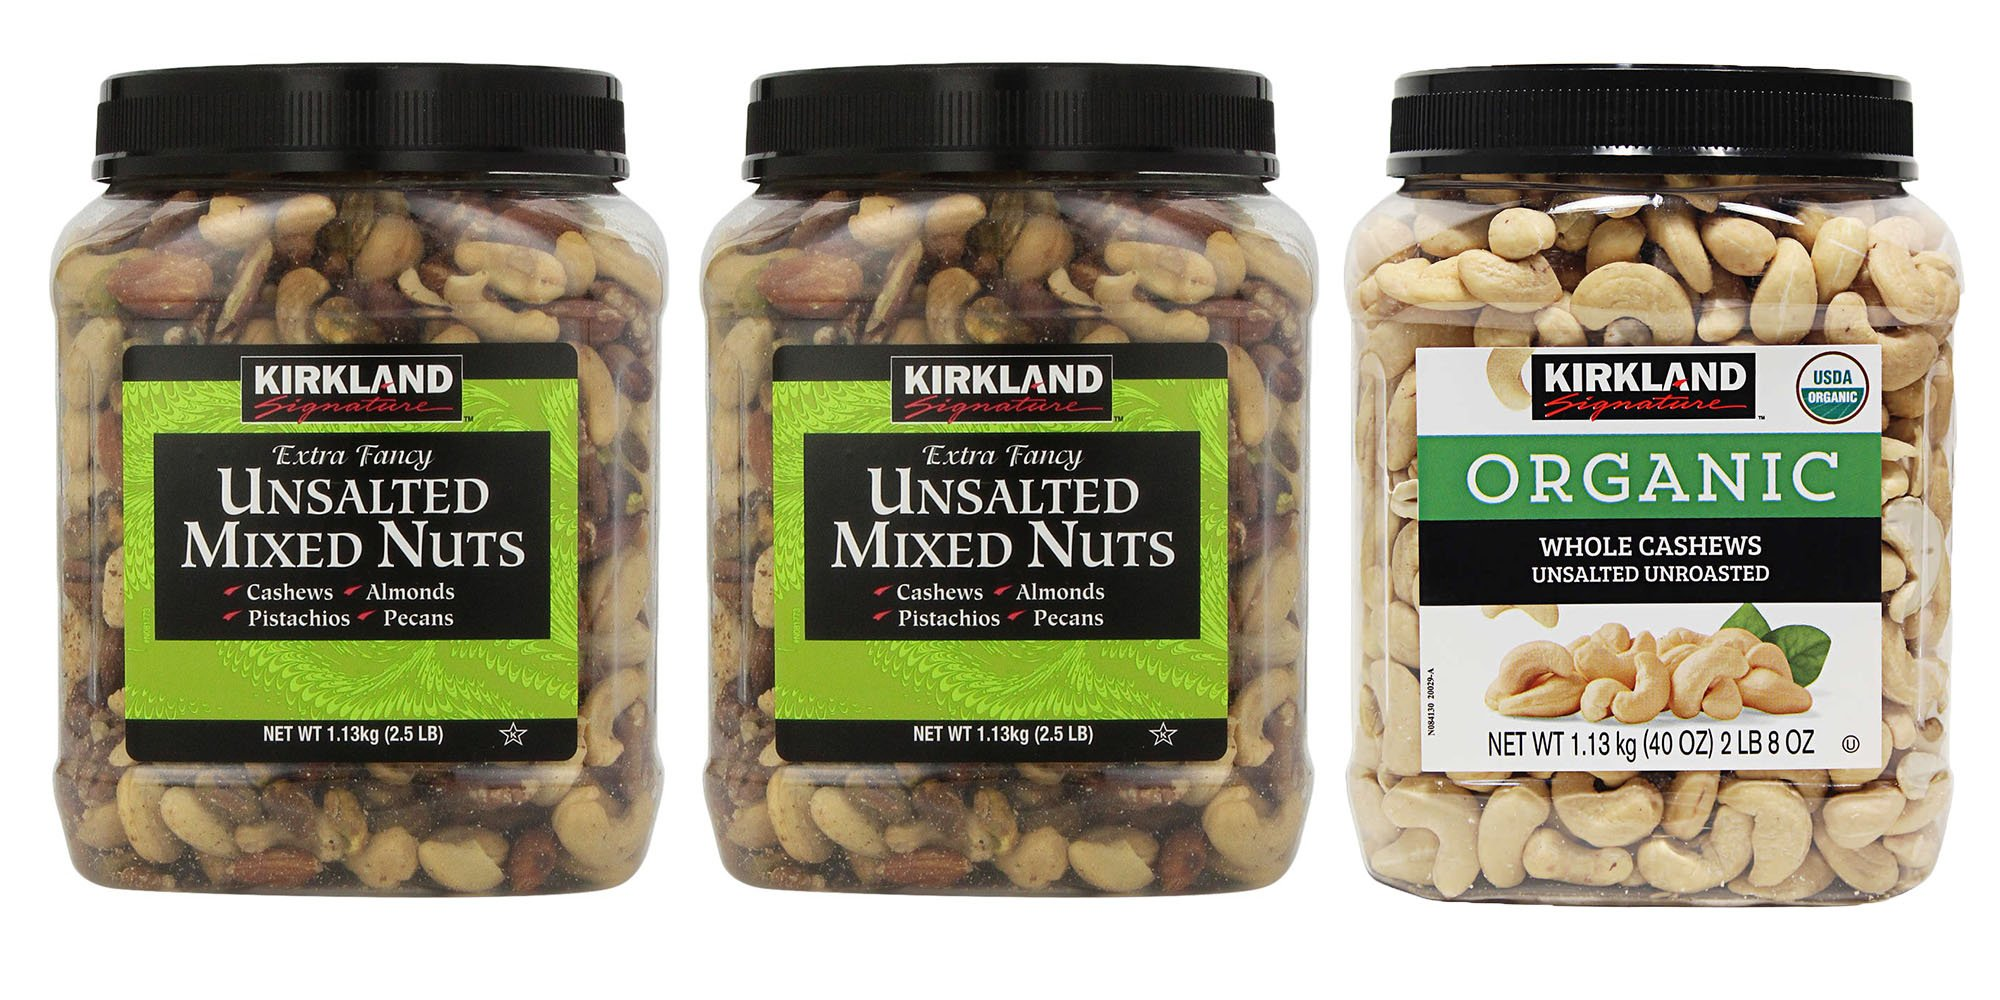 Kirkland Signature Unsalted Mixed Nuts and Organic Cashews Bundle - Includes Kirkland Signature Two Extra Fancy Unsalted Mixed Nuts (2.5 LB Each.) and Organic Unsalted Unroasted Cashews (2.0 LB)